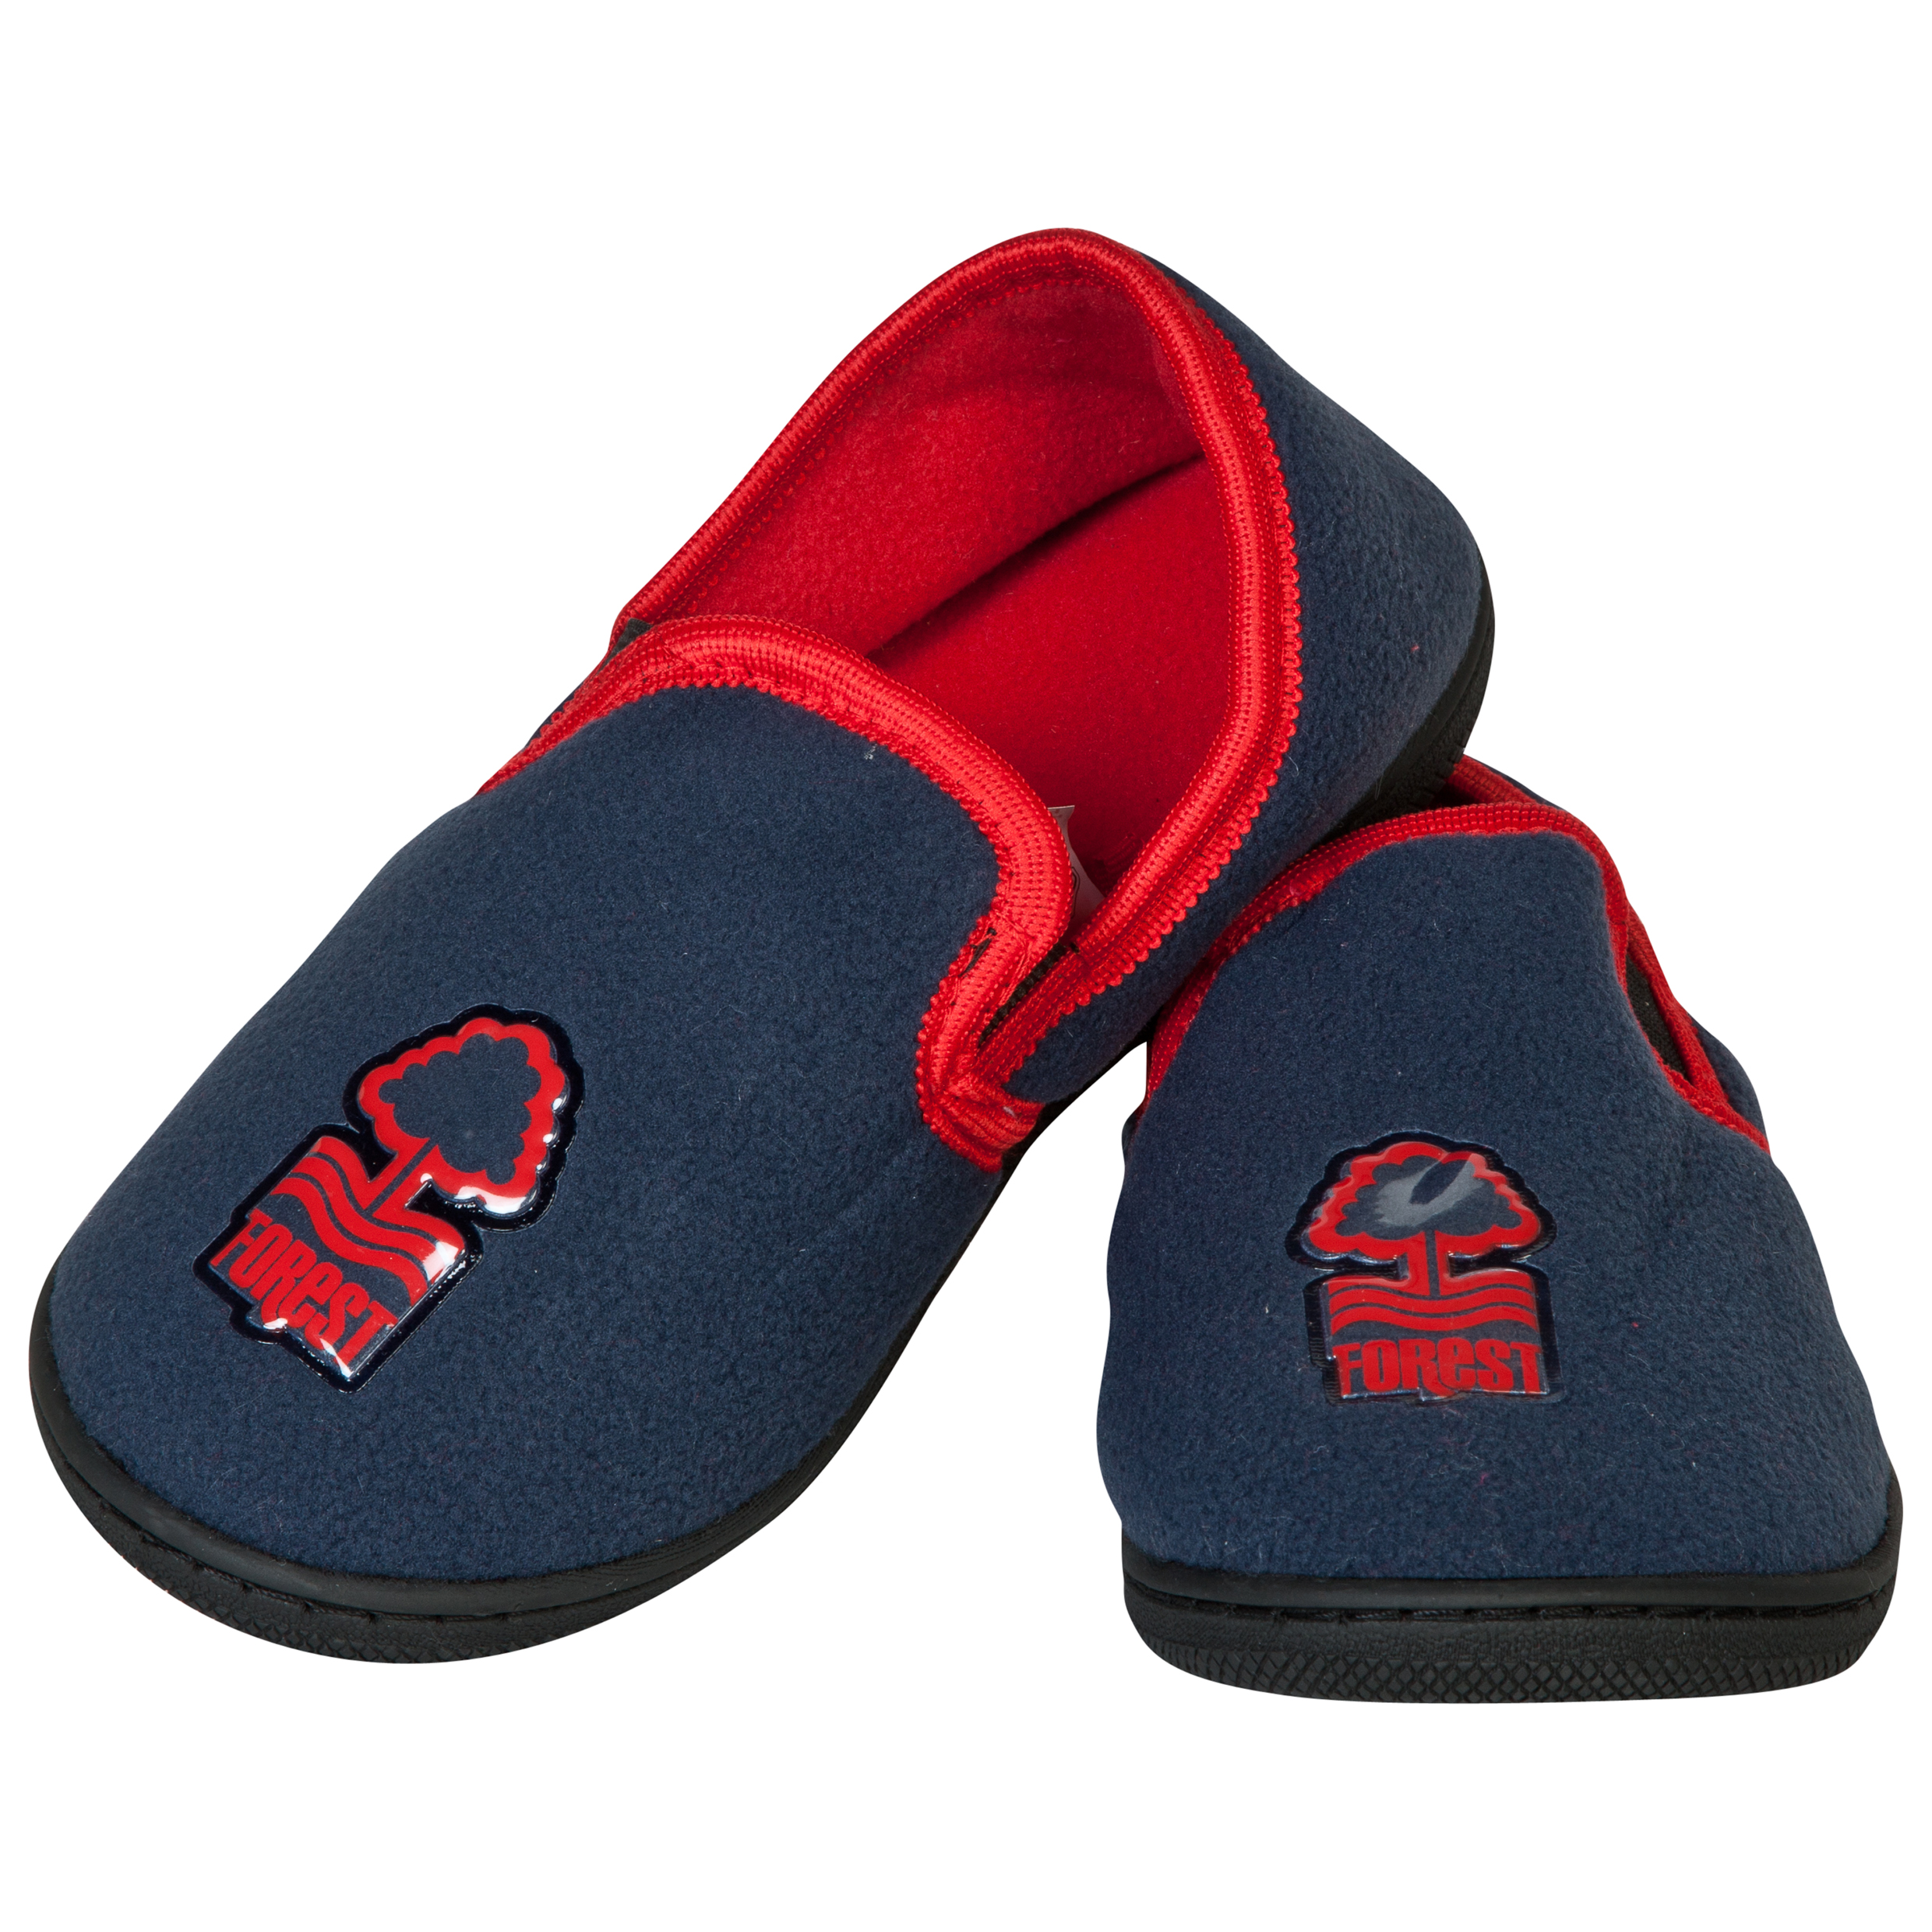 Nottingham Forest Joshua Slippers Boys Navy